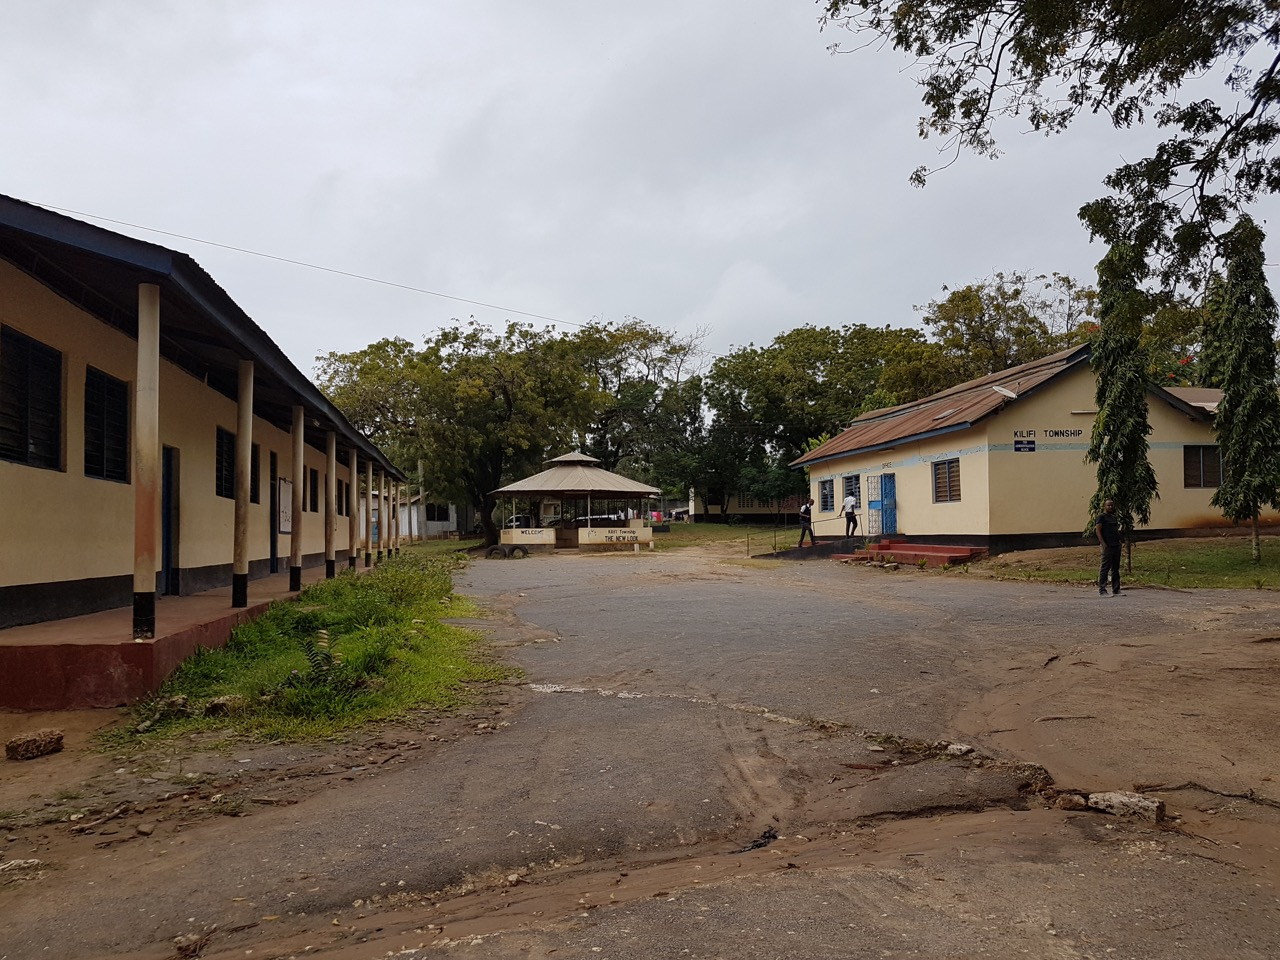 Kilifi Township Secondary School